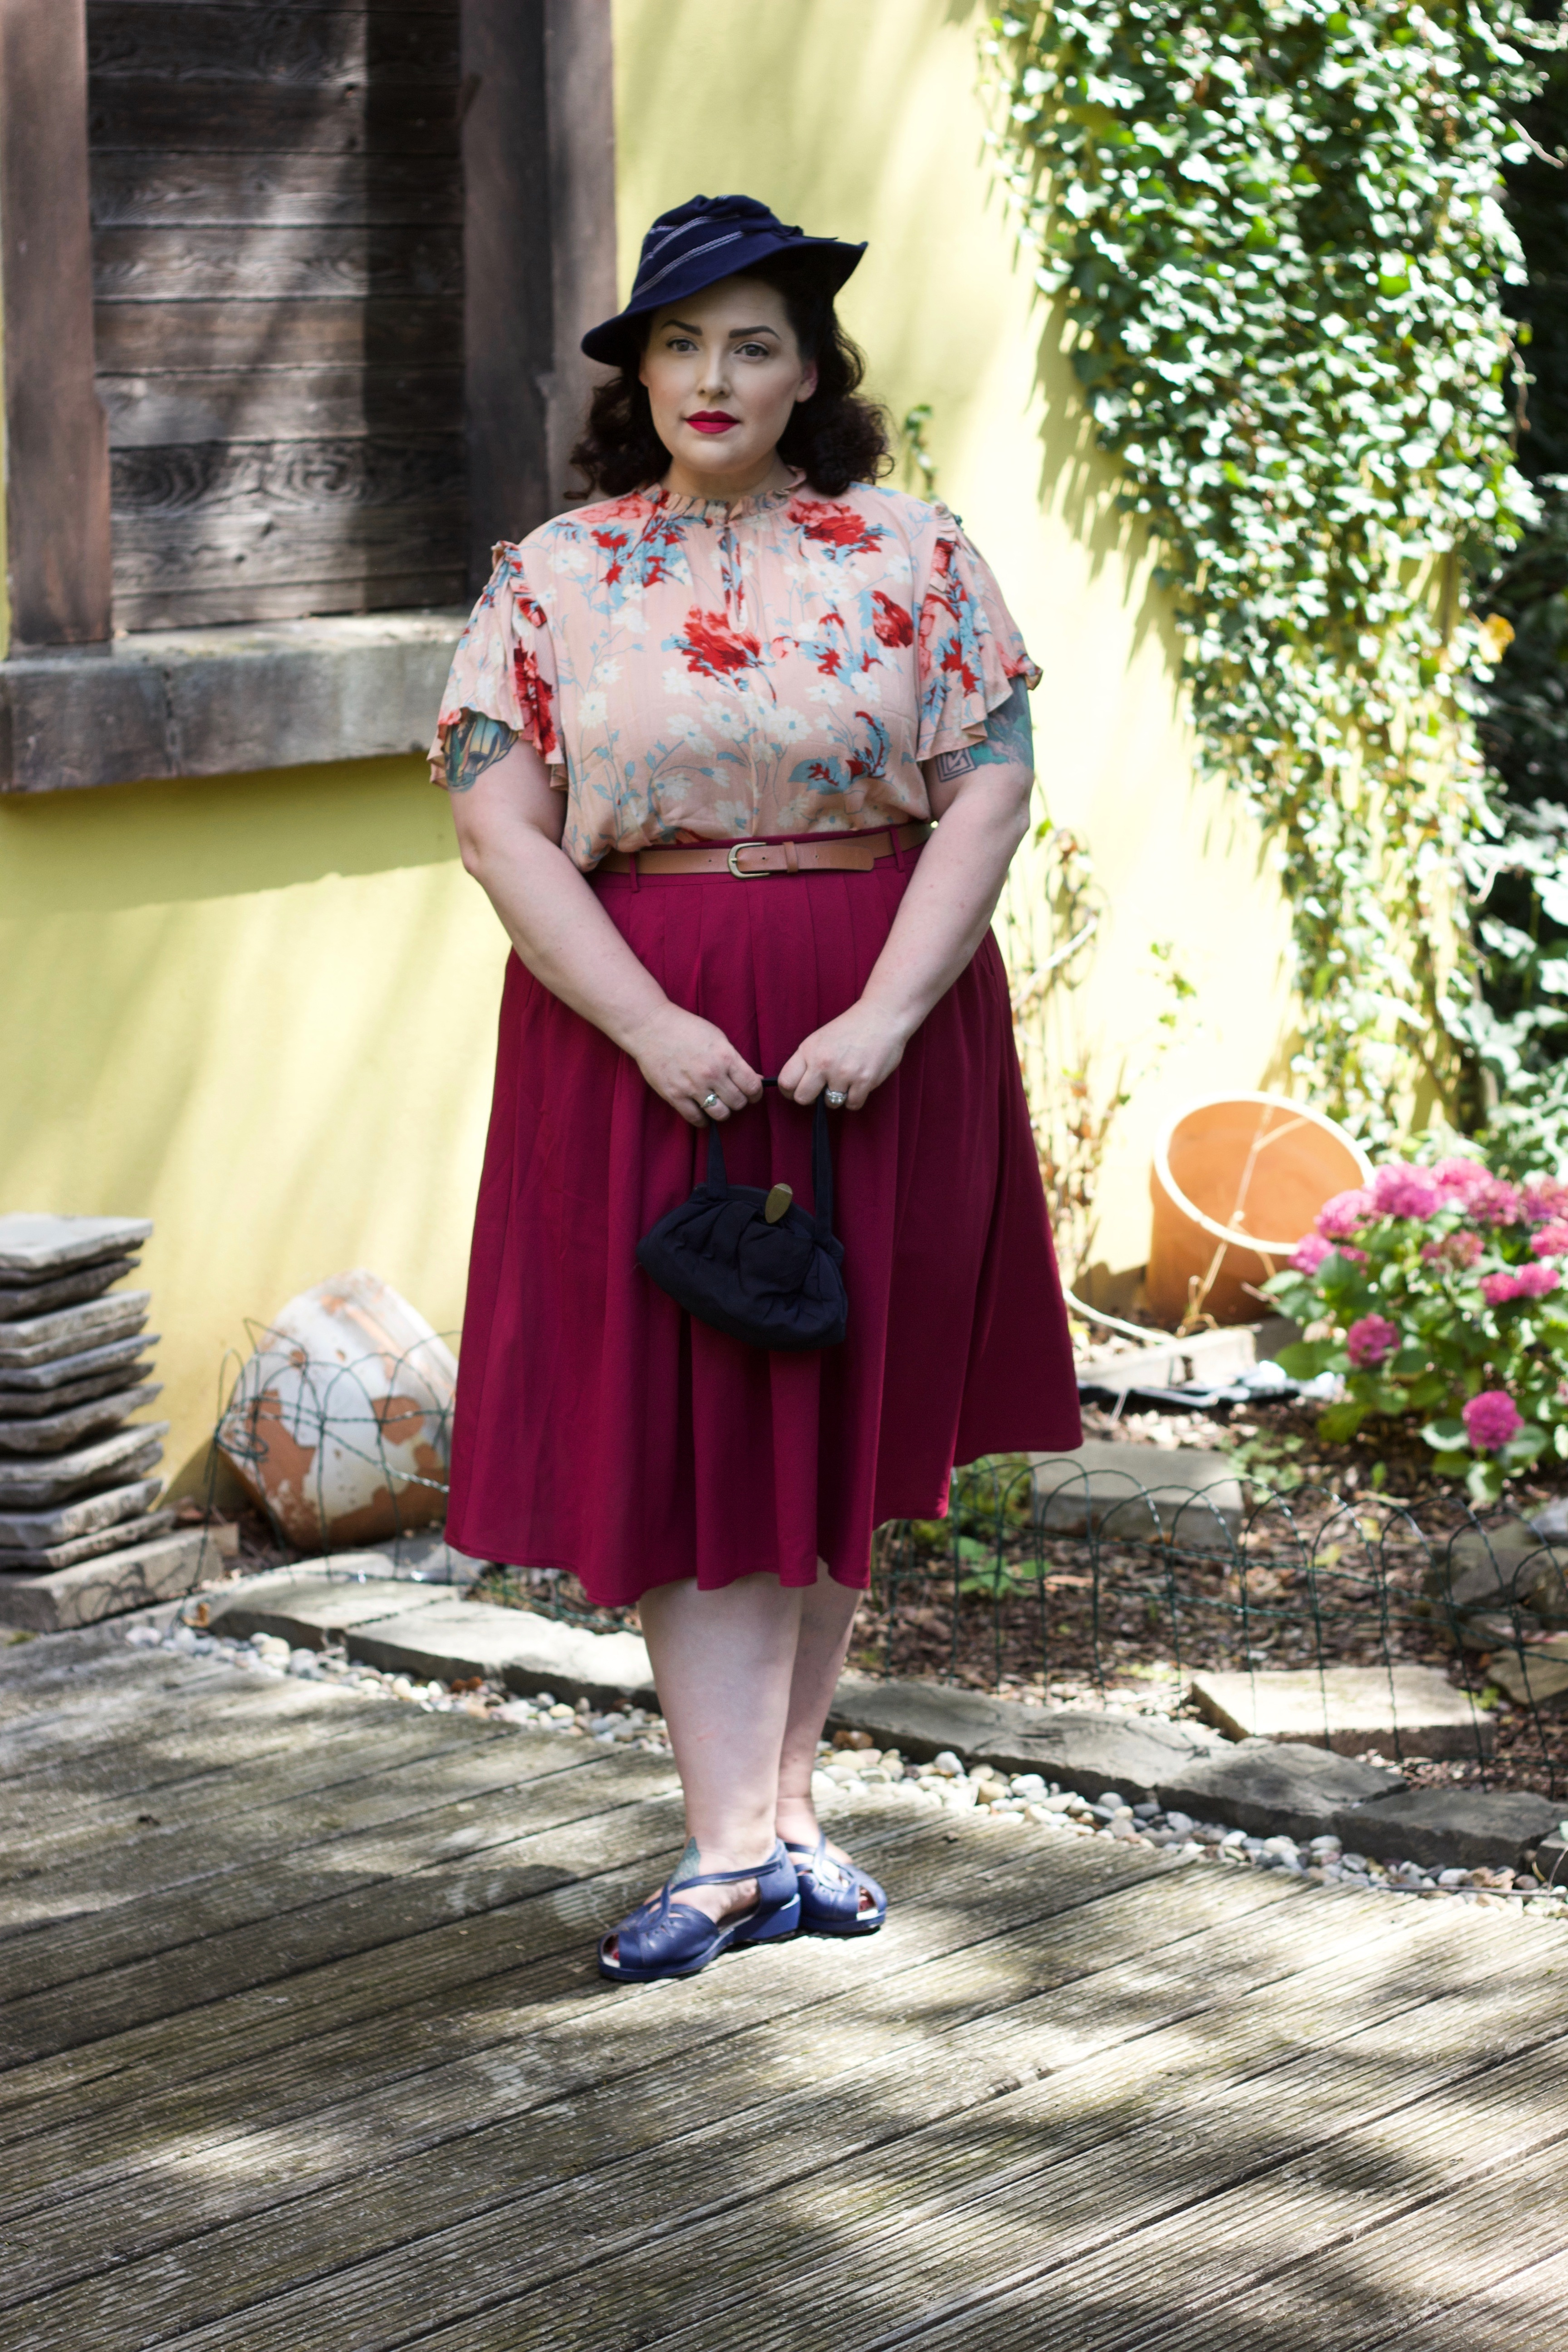 Vintage Style Plus Size Woman in Red Skirt, pink blouse and blue hat